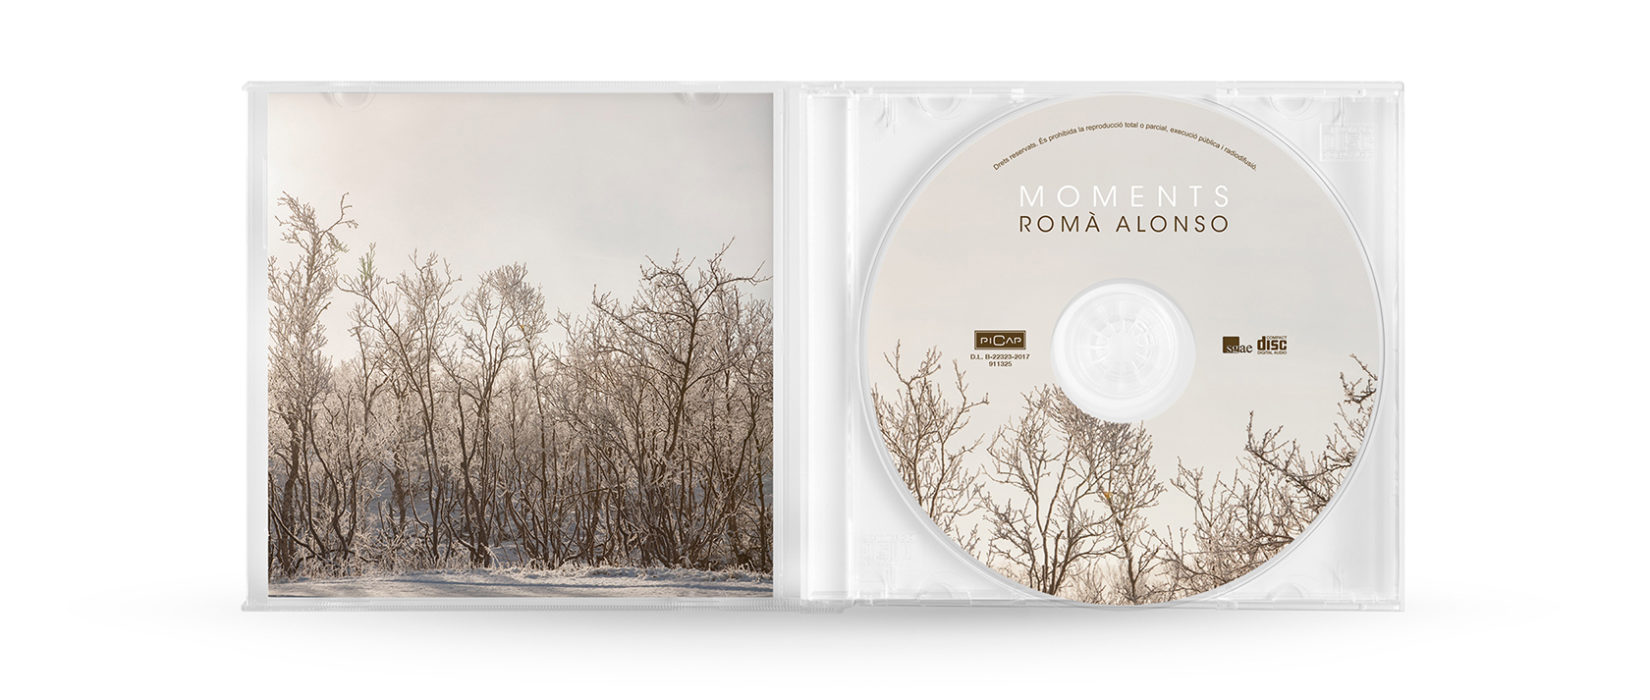 ROMÀ ALONSO. INTERIOR CD.